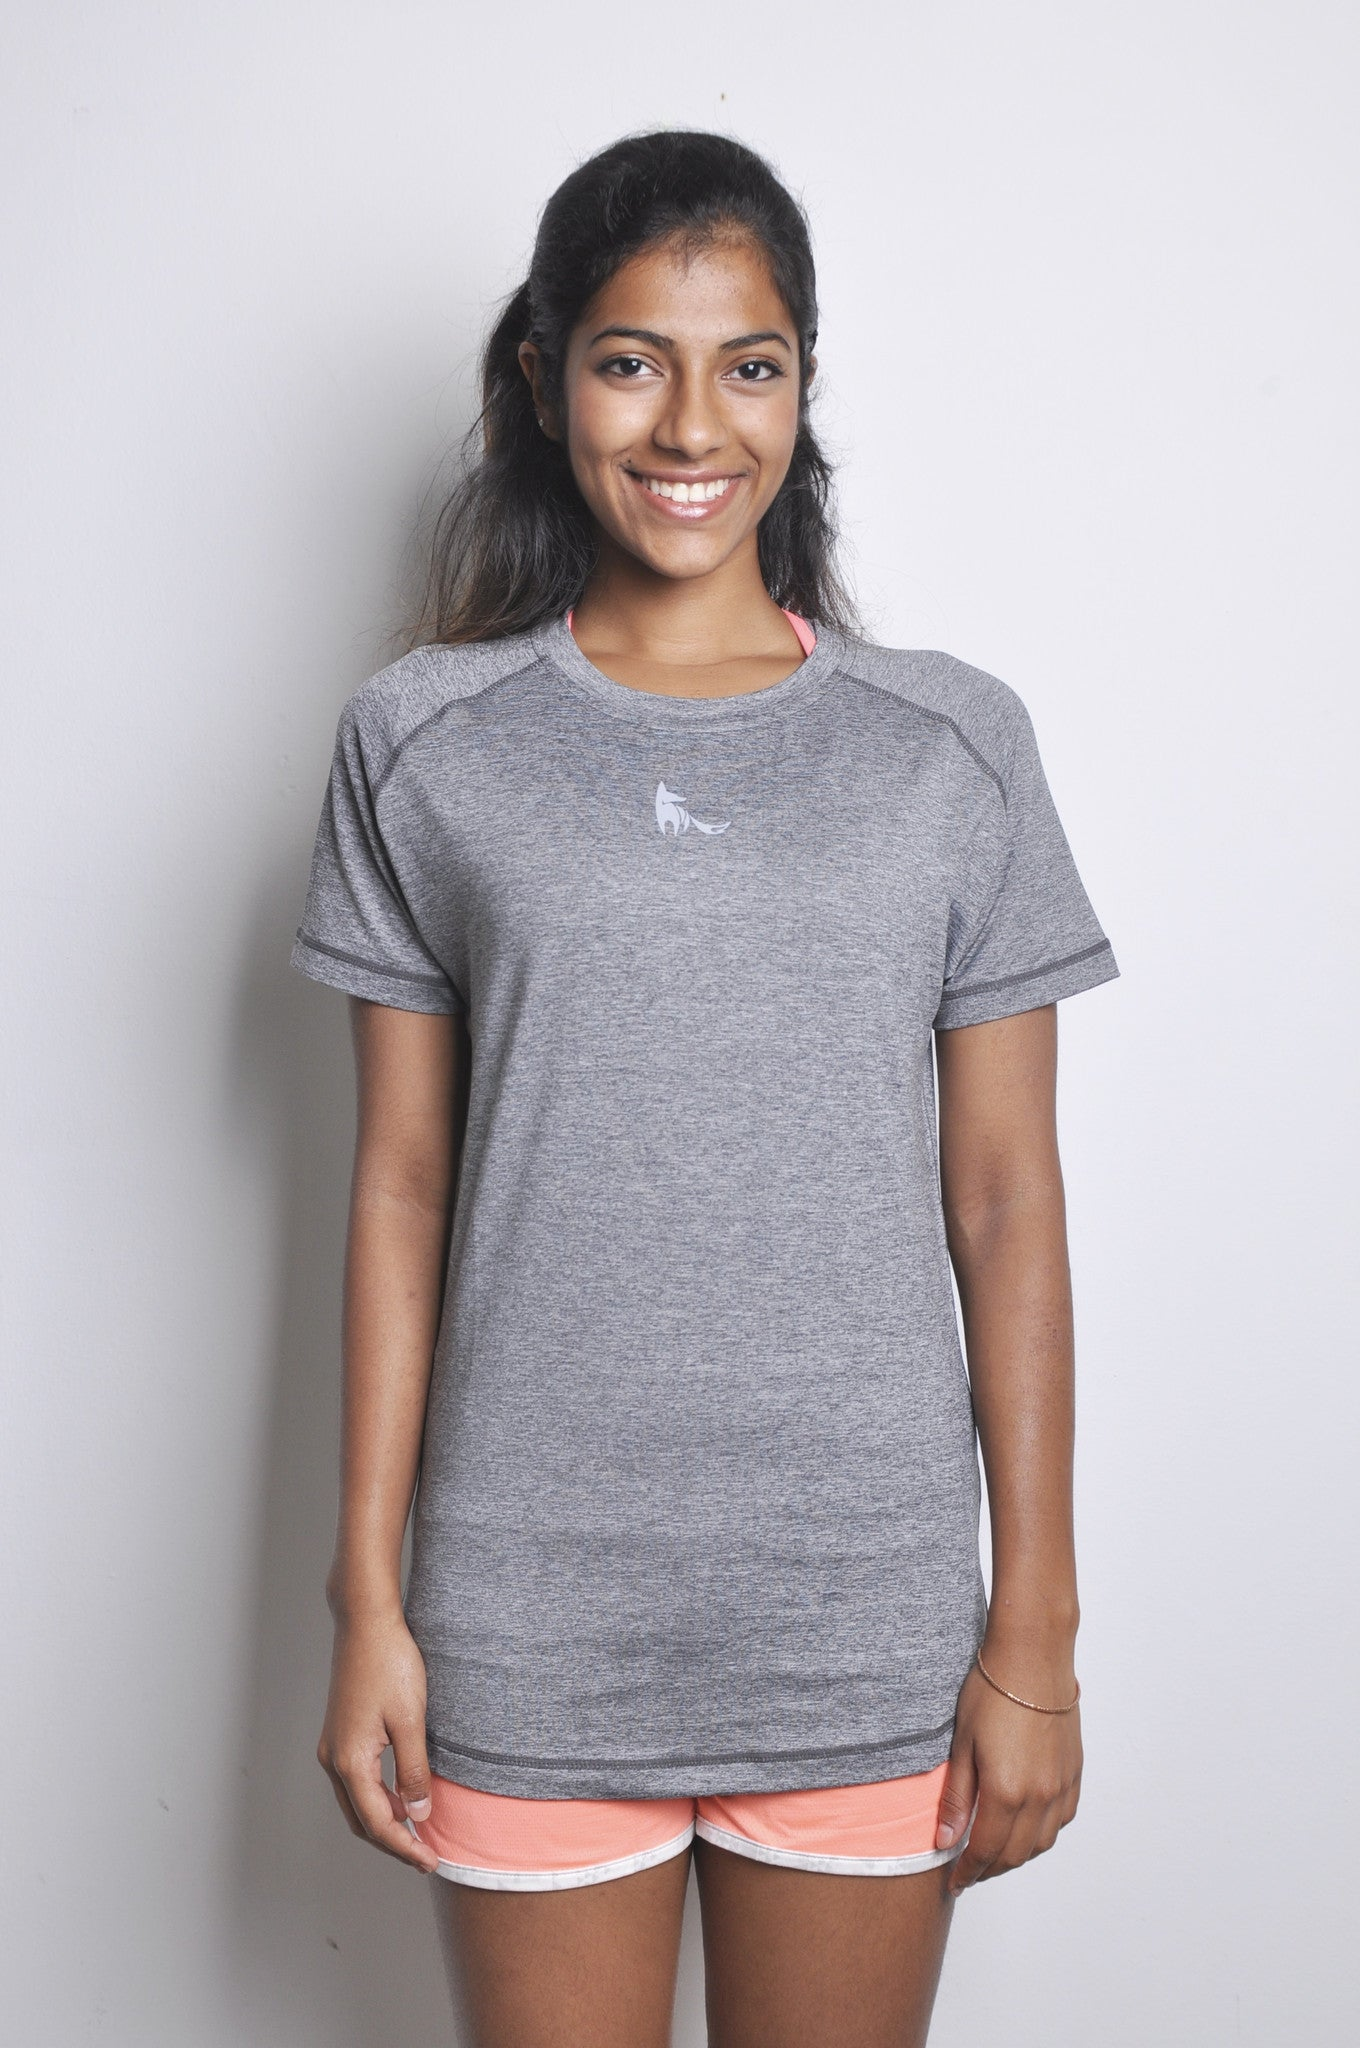 athletic nimble tee in charcoal